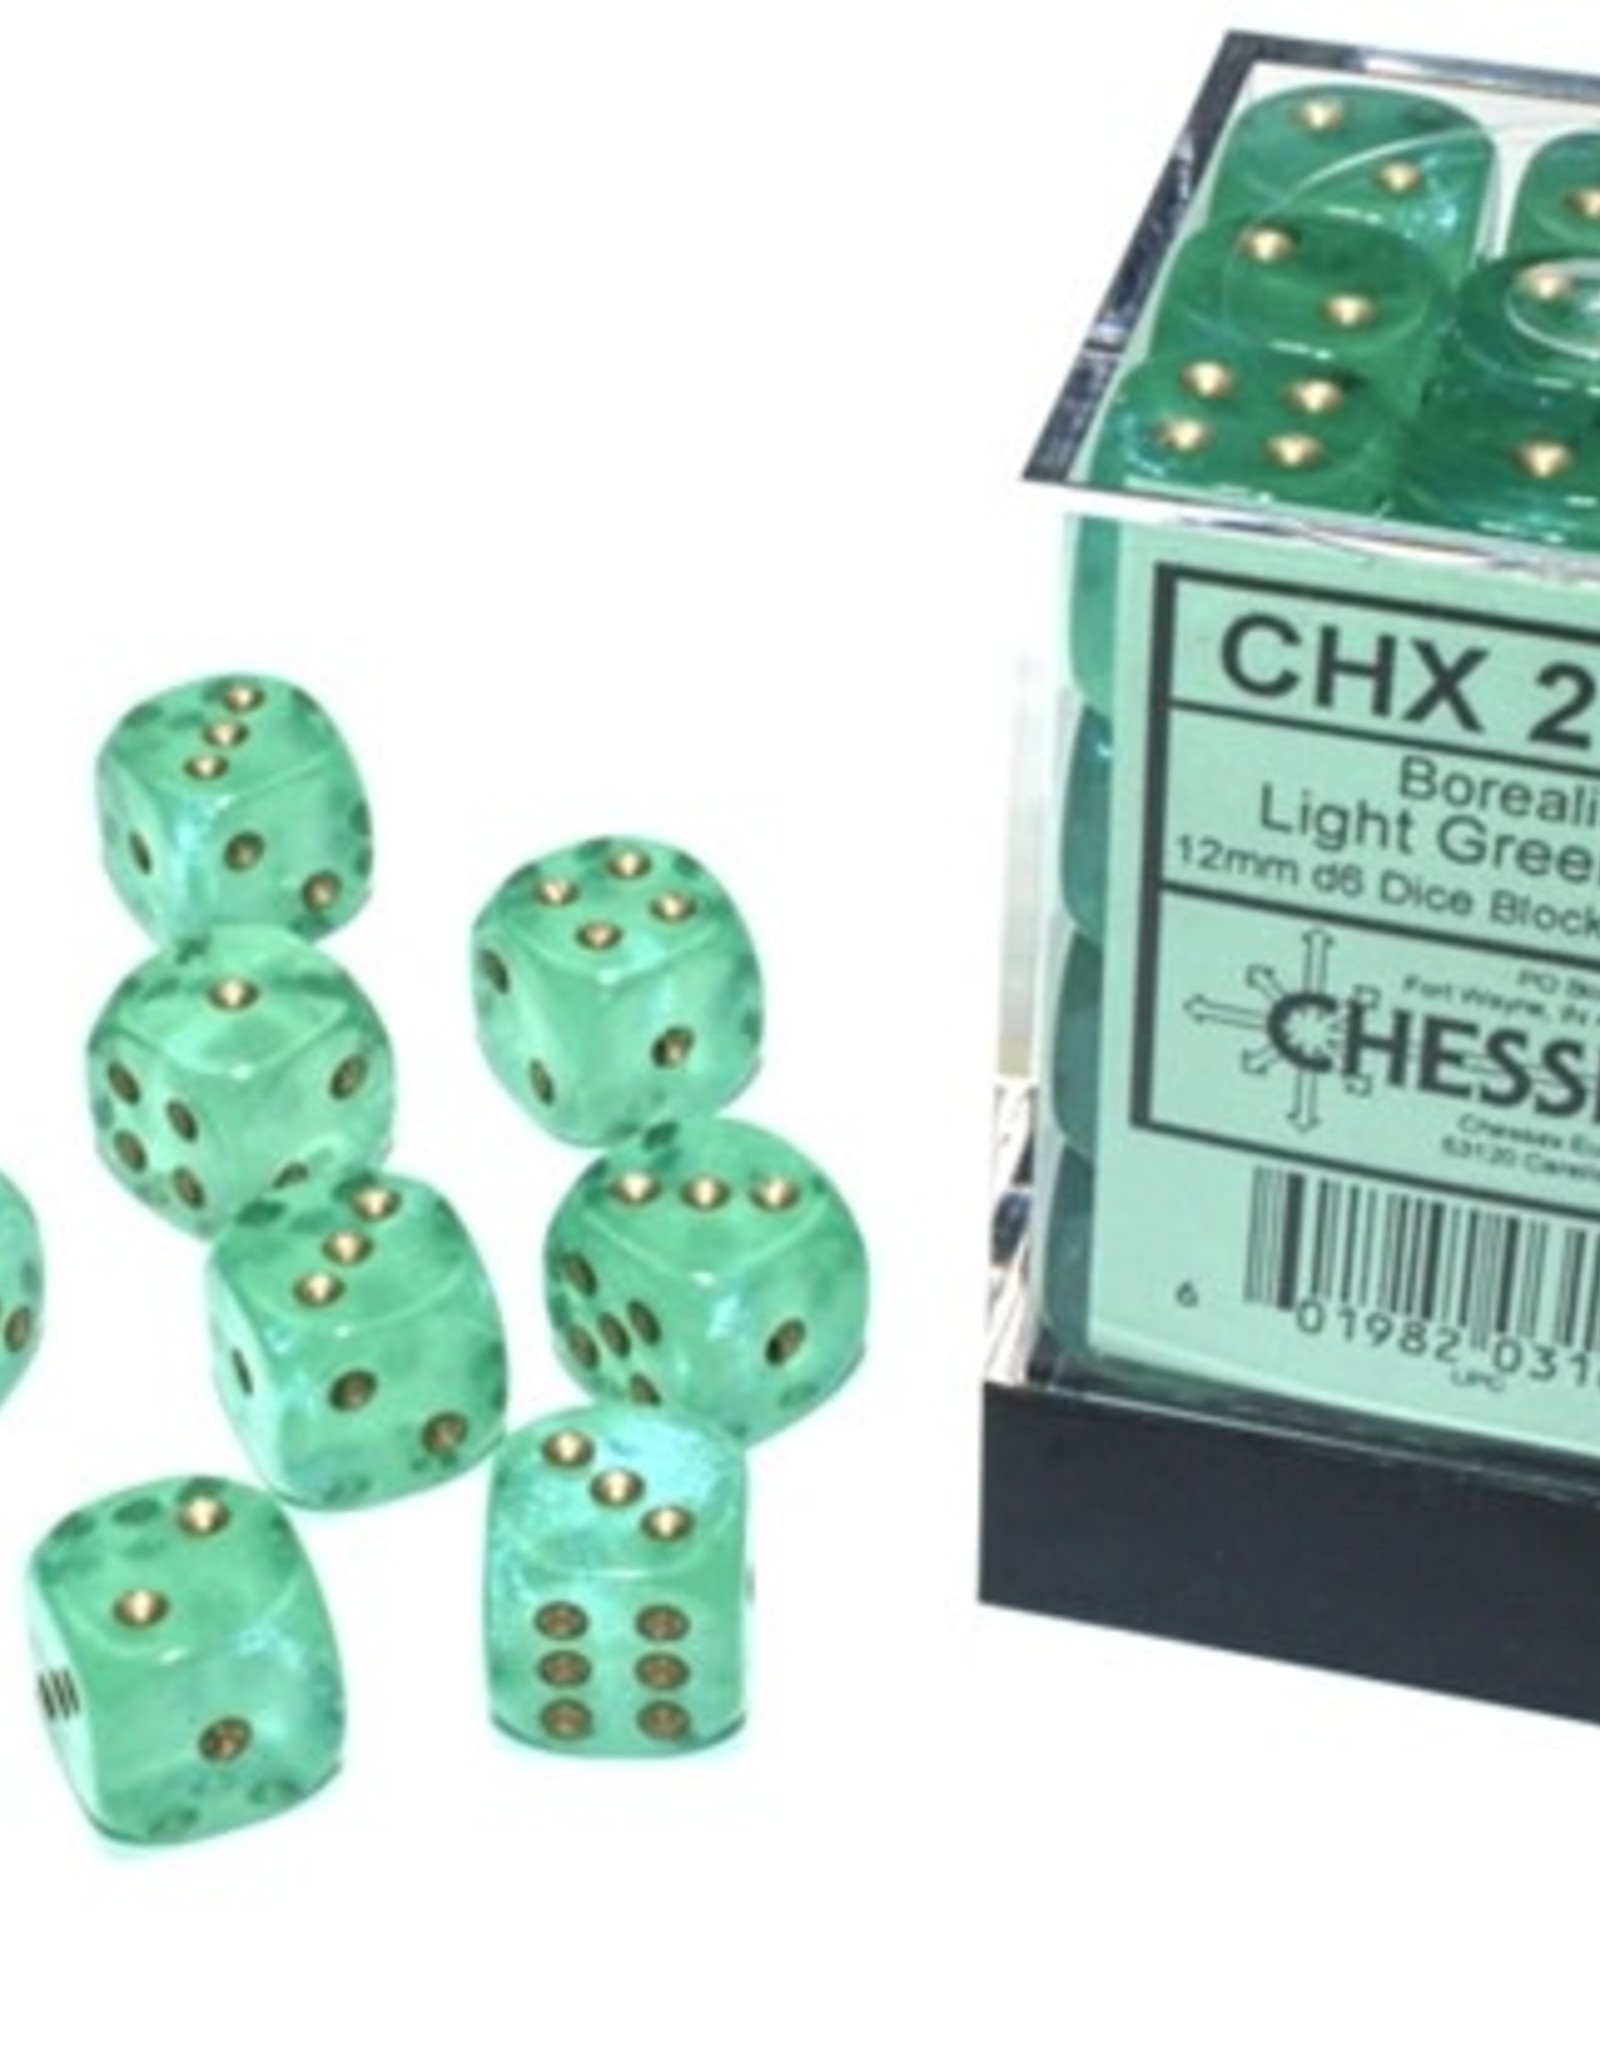 Chessex d6 Cube 12mm Borealis Luminary Light Green w/ Gold (36)